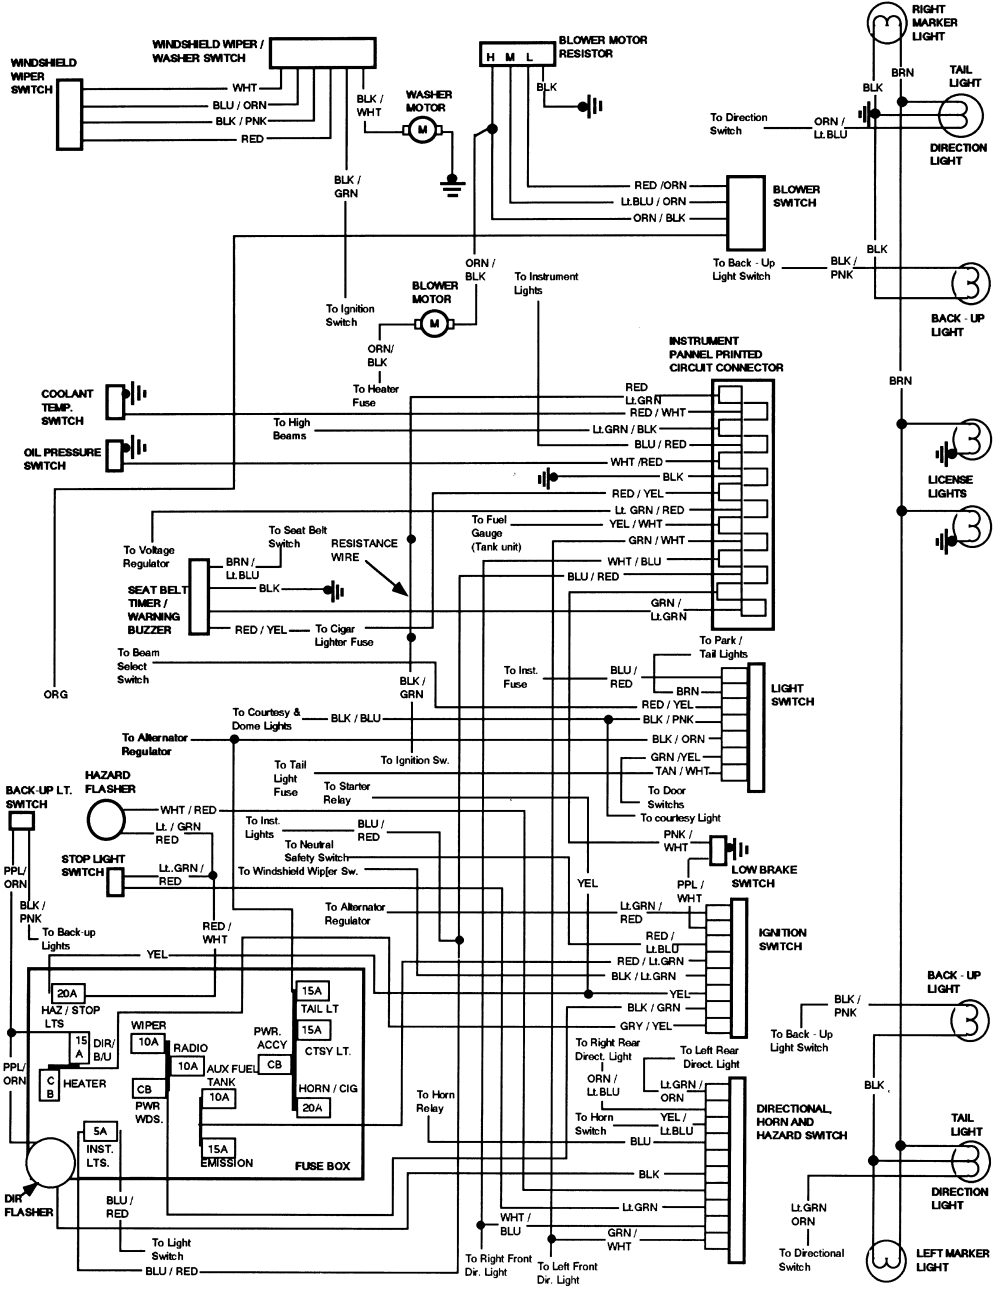 diagram] 1969 ford pickup truck wiring diagram reprint f 10f 25f 350 full  version hd quality 25f 350 - basketballseatingdiagram.k-danse.fr  k-danse.fr